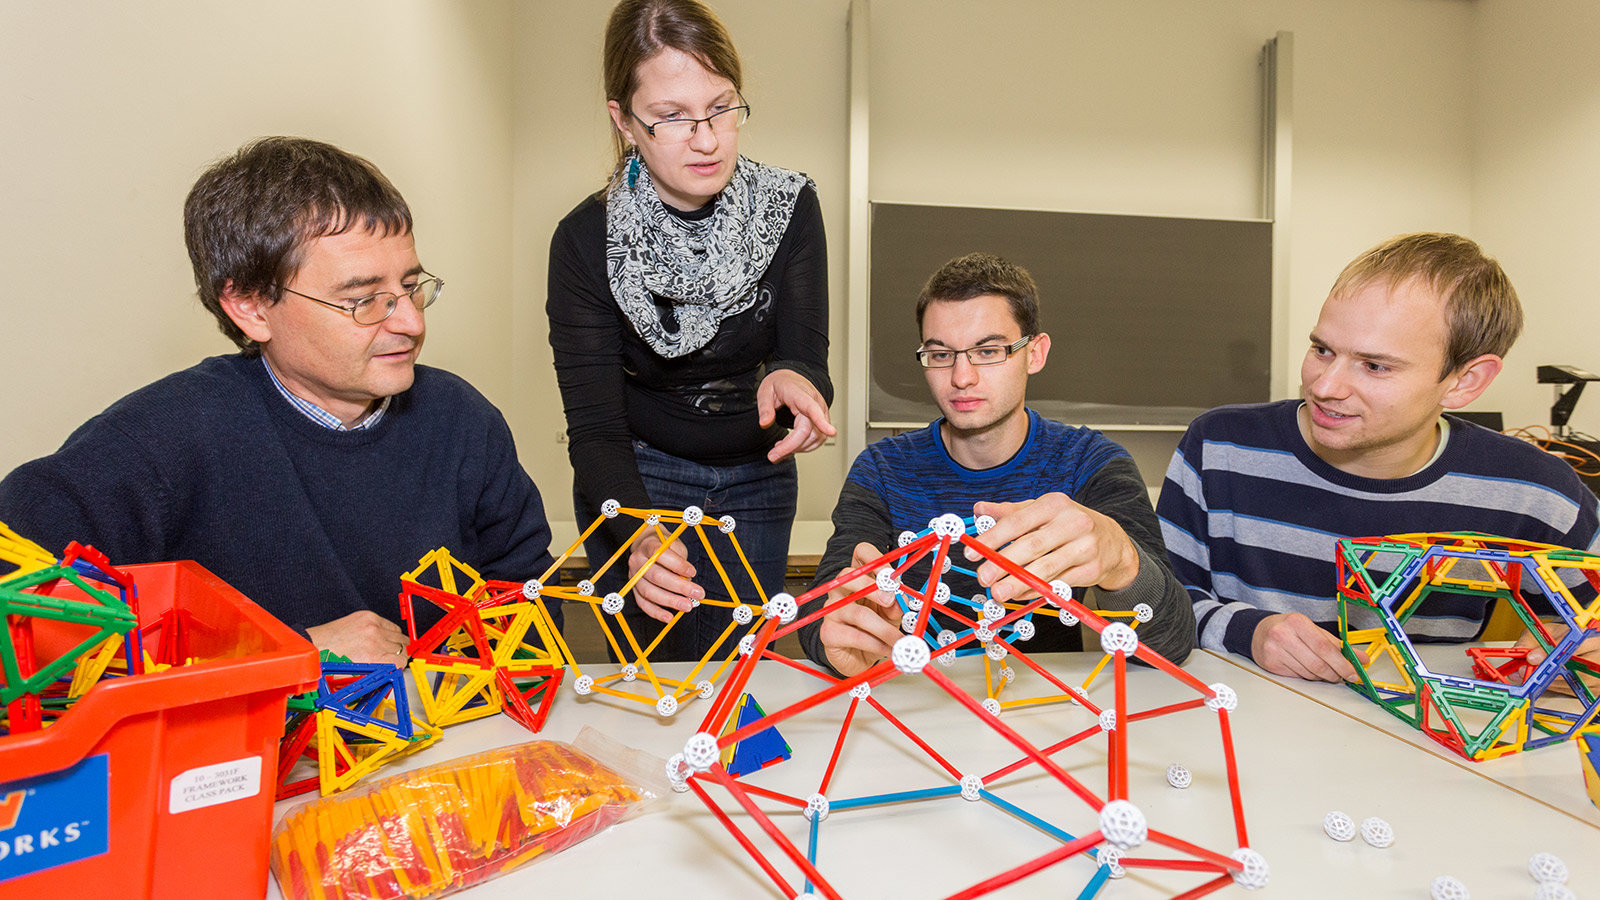 A professor speaks with students about polyhedrons on a table